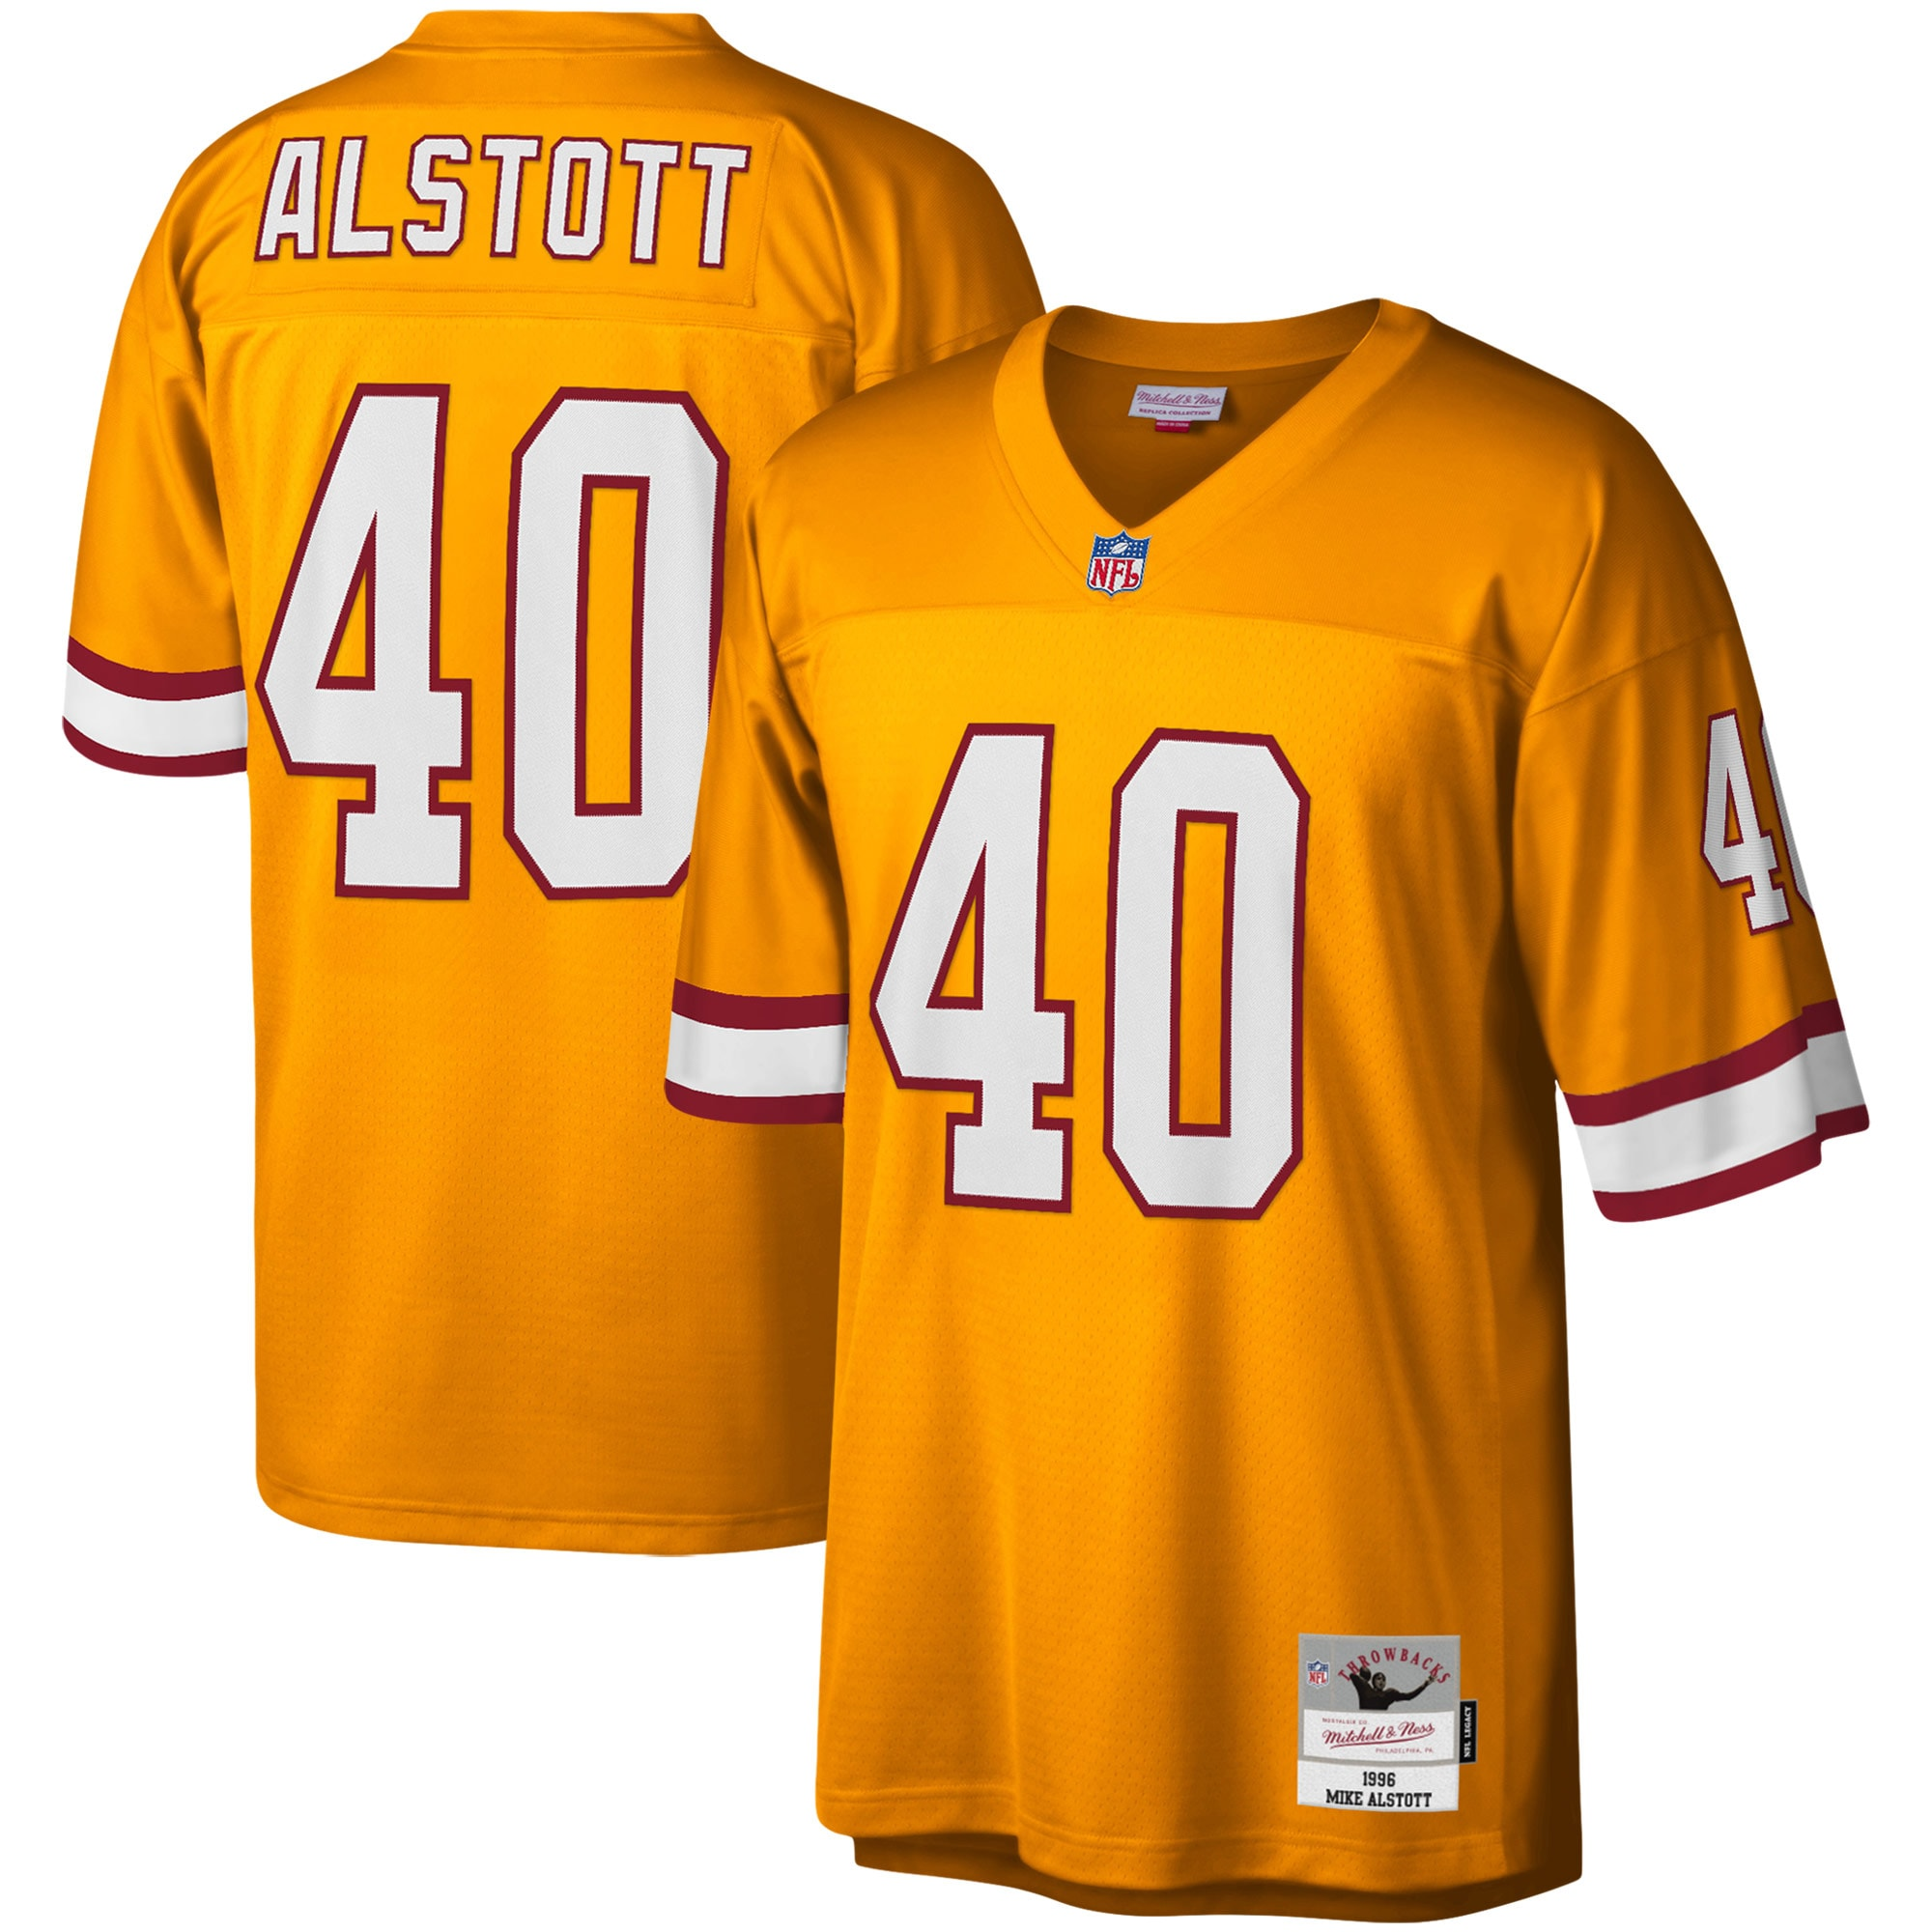 Mike Alstott Tampa Bay Buccaneers Mitchell & Ness Legacy Replica Jersey - Orange